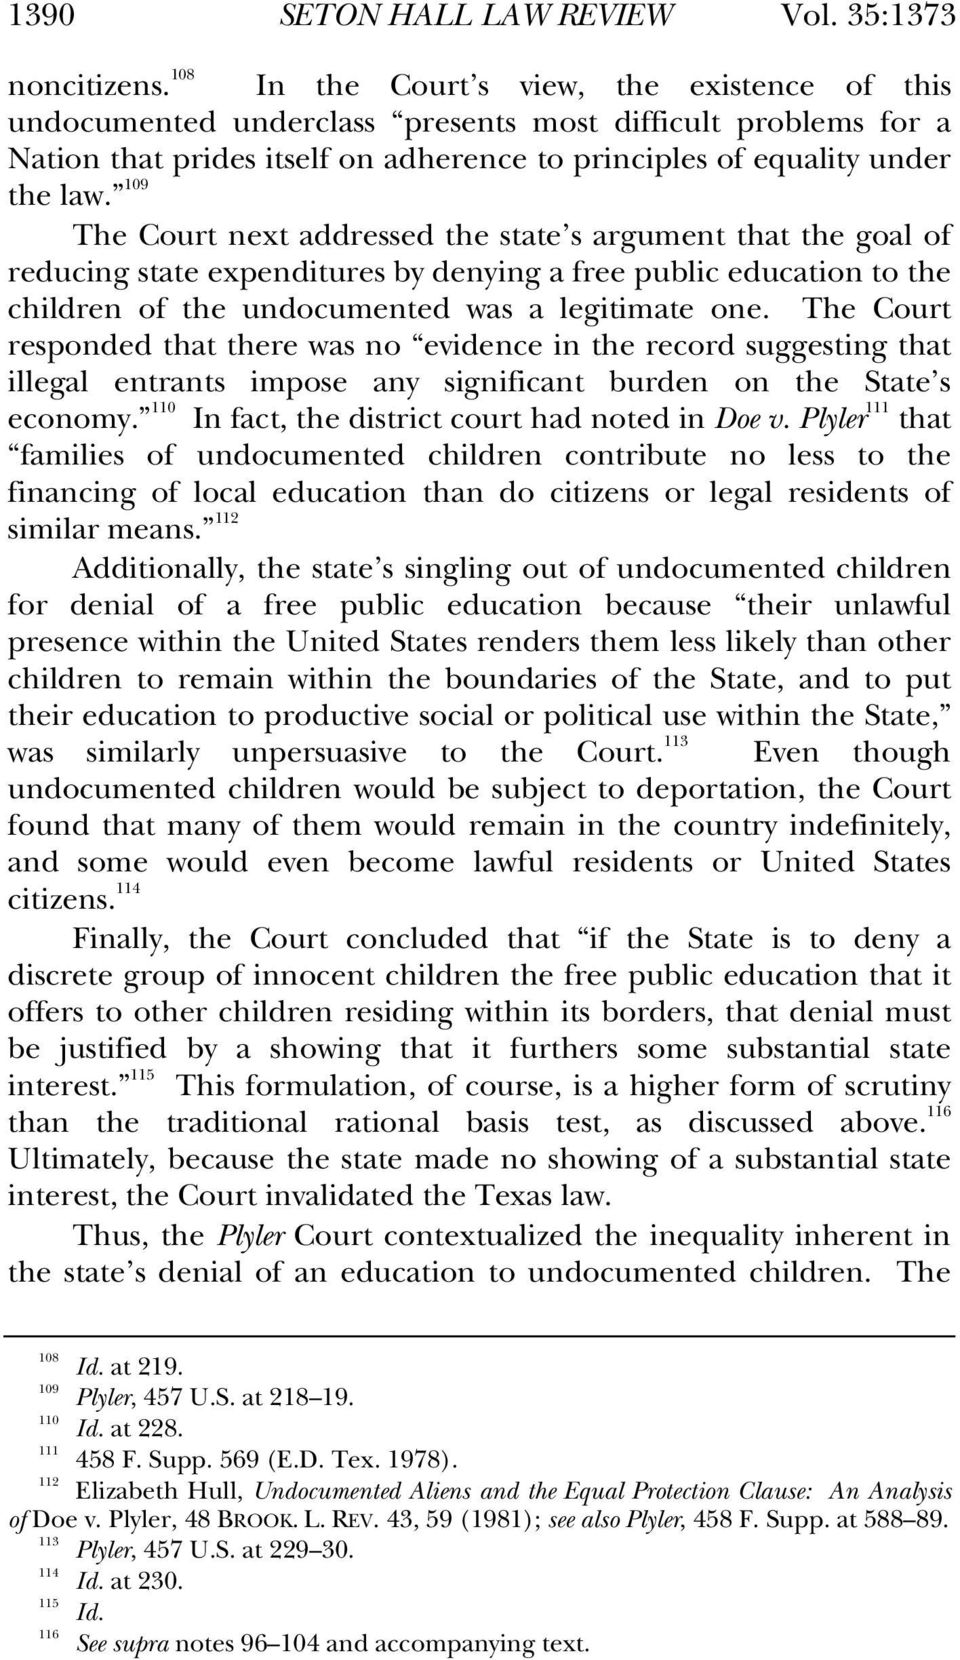 109 The Court next addressed the state s argument that the goal of reducing state expenditures by denying a free public education to the children of the undocumented was a legitimate one.